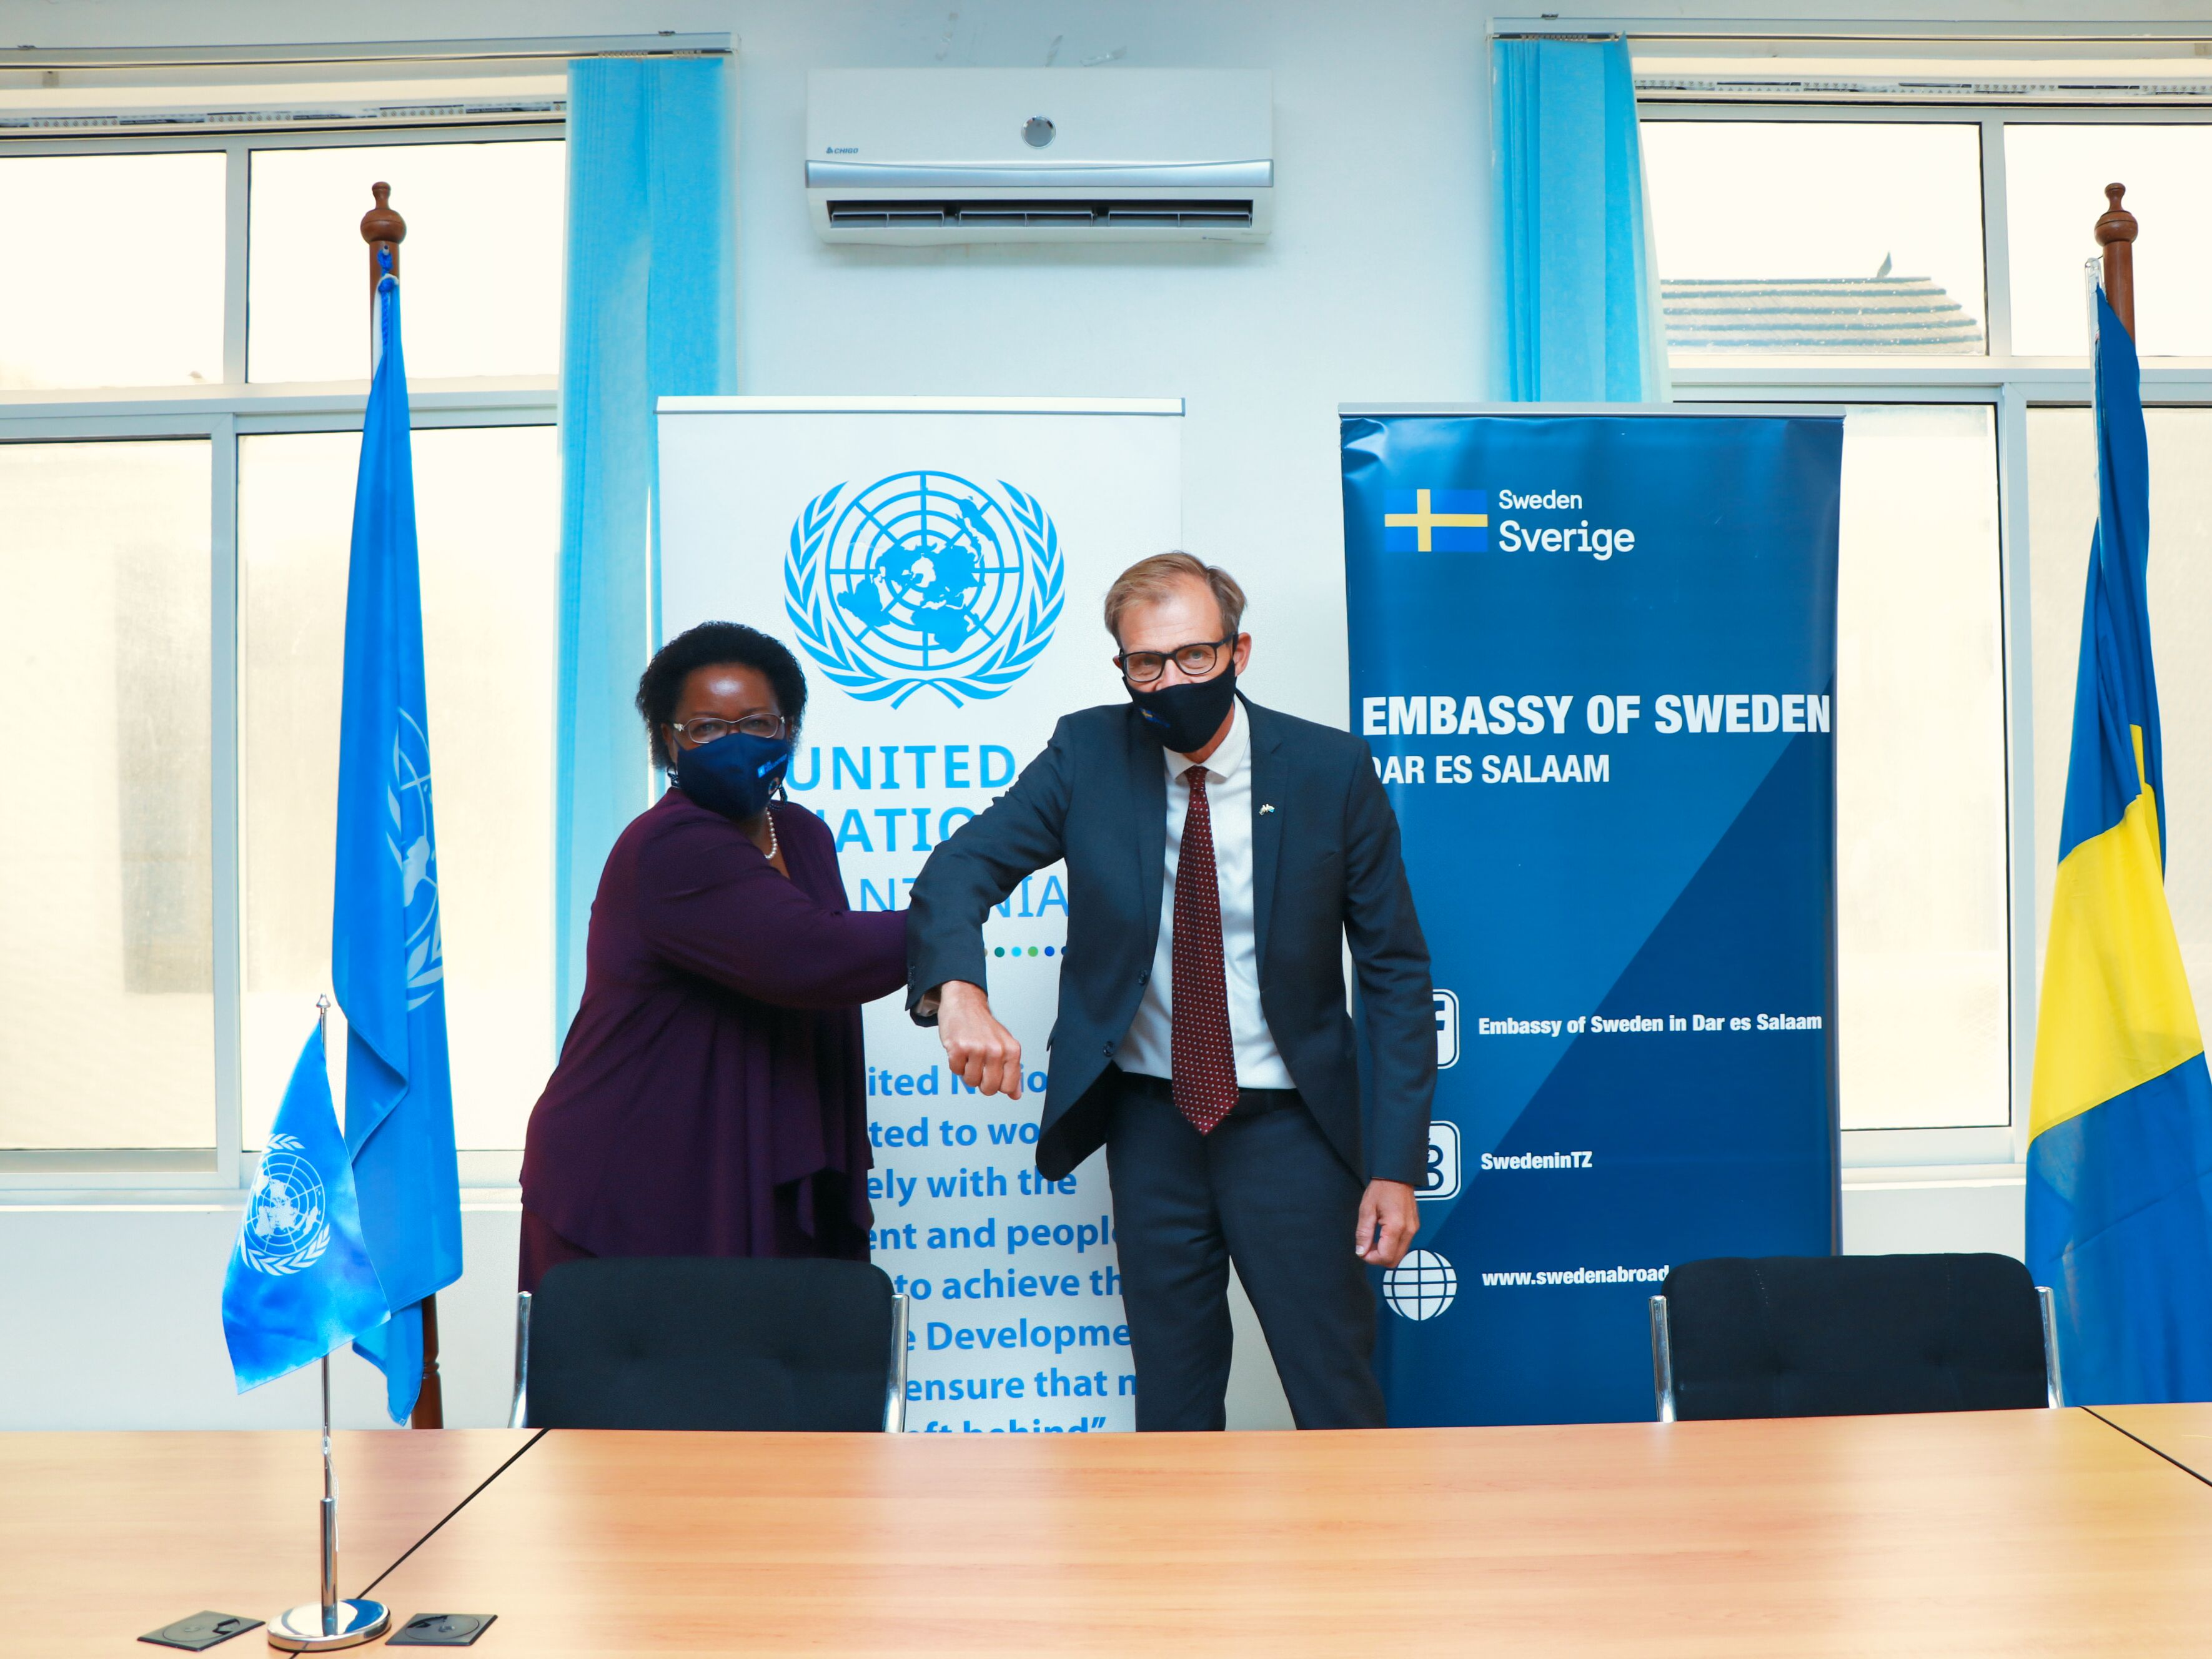 Sweden gives UN extra USD 6.4 million for development activities in Tanzania